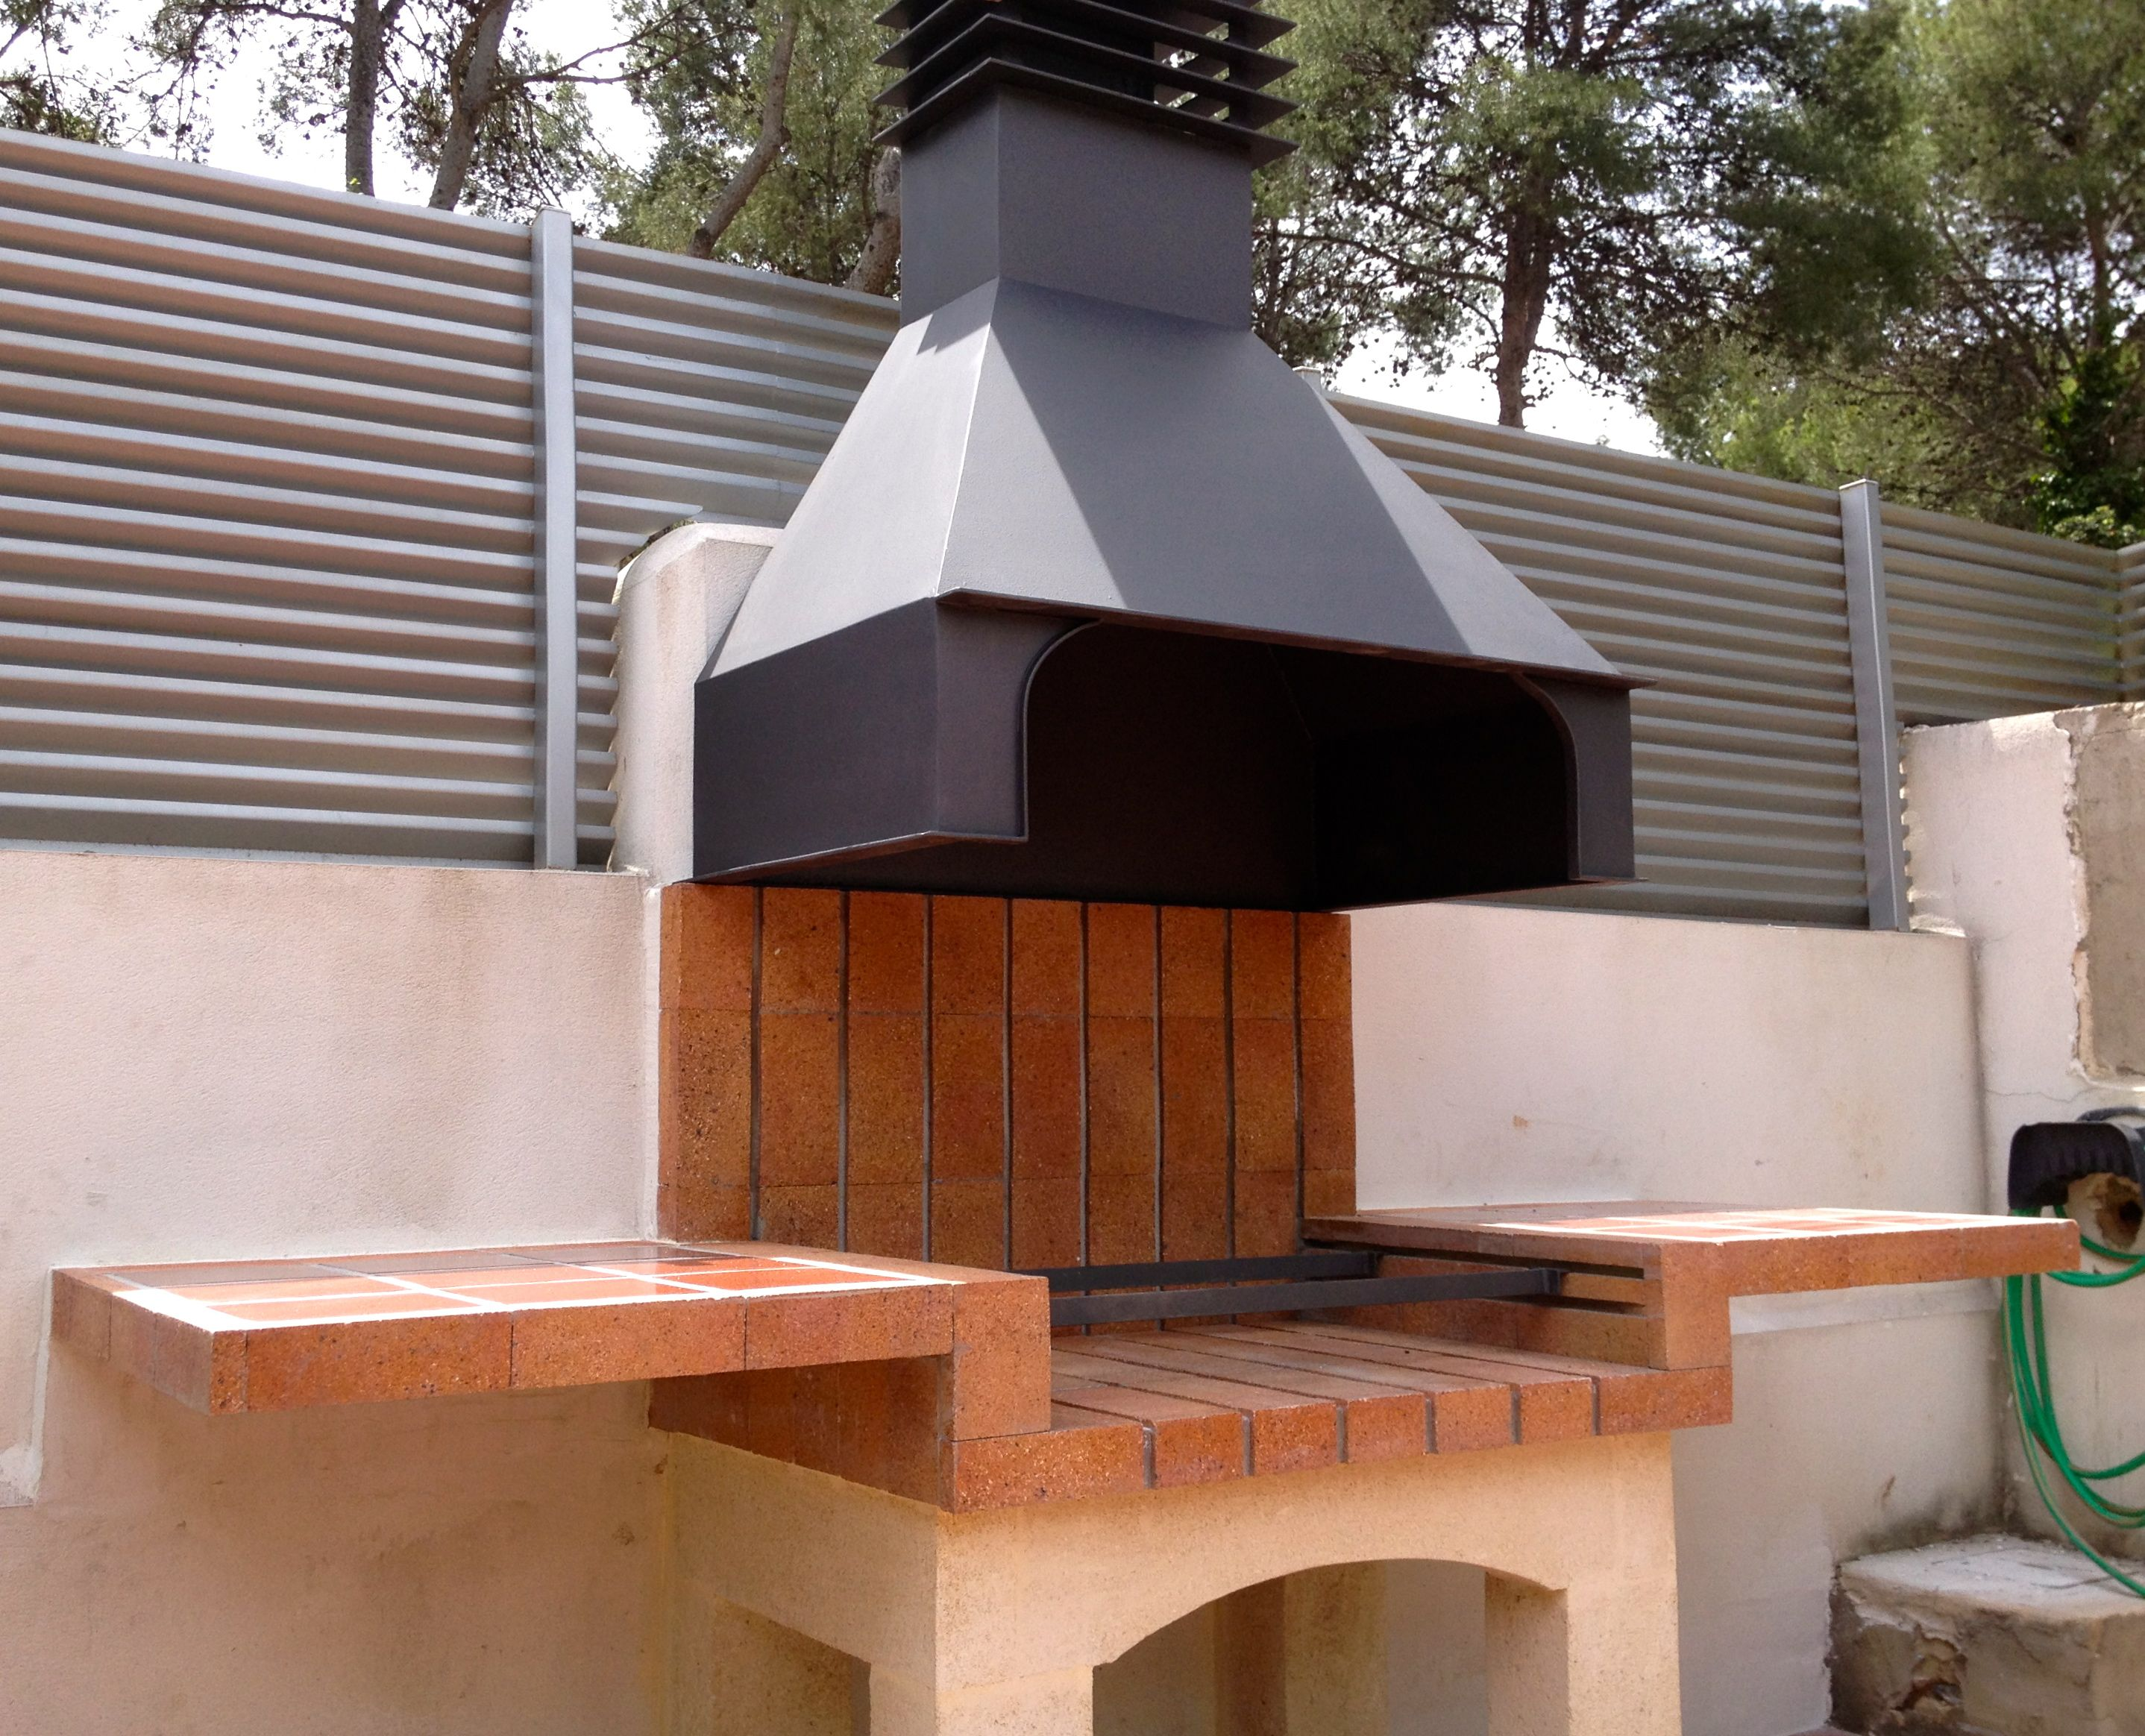 Asadores de ladrillo con chimenea buscar con google ideas pinterest fire cooking patios - Chimenea ladrillo ...